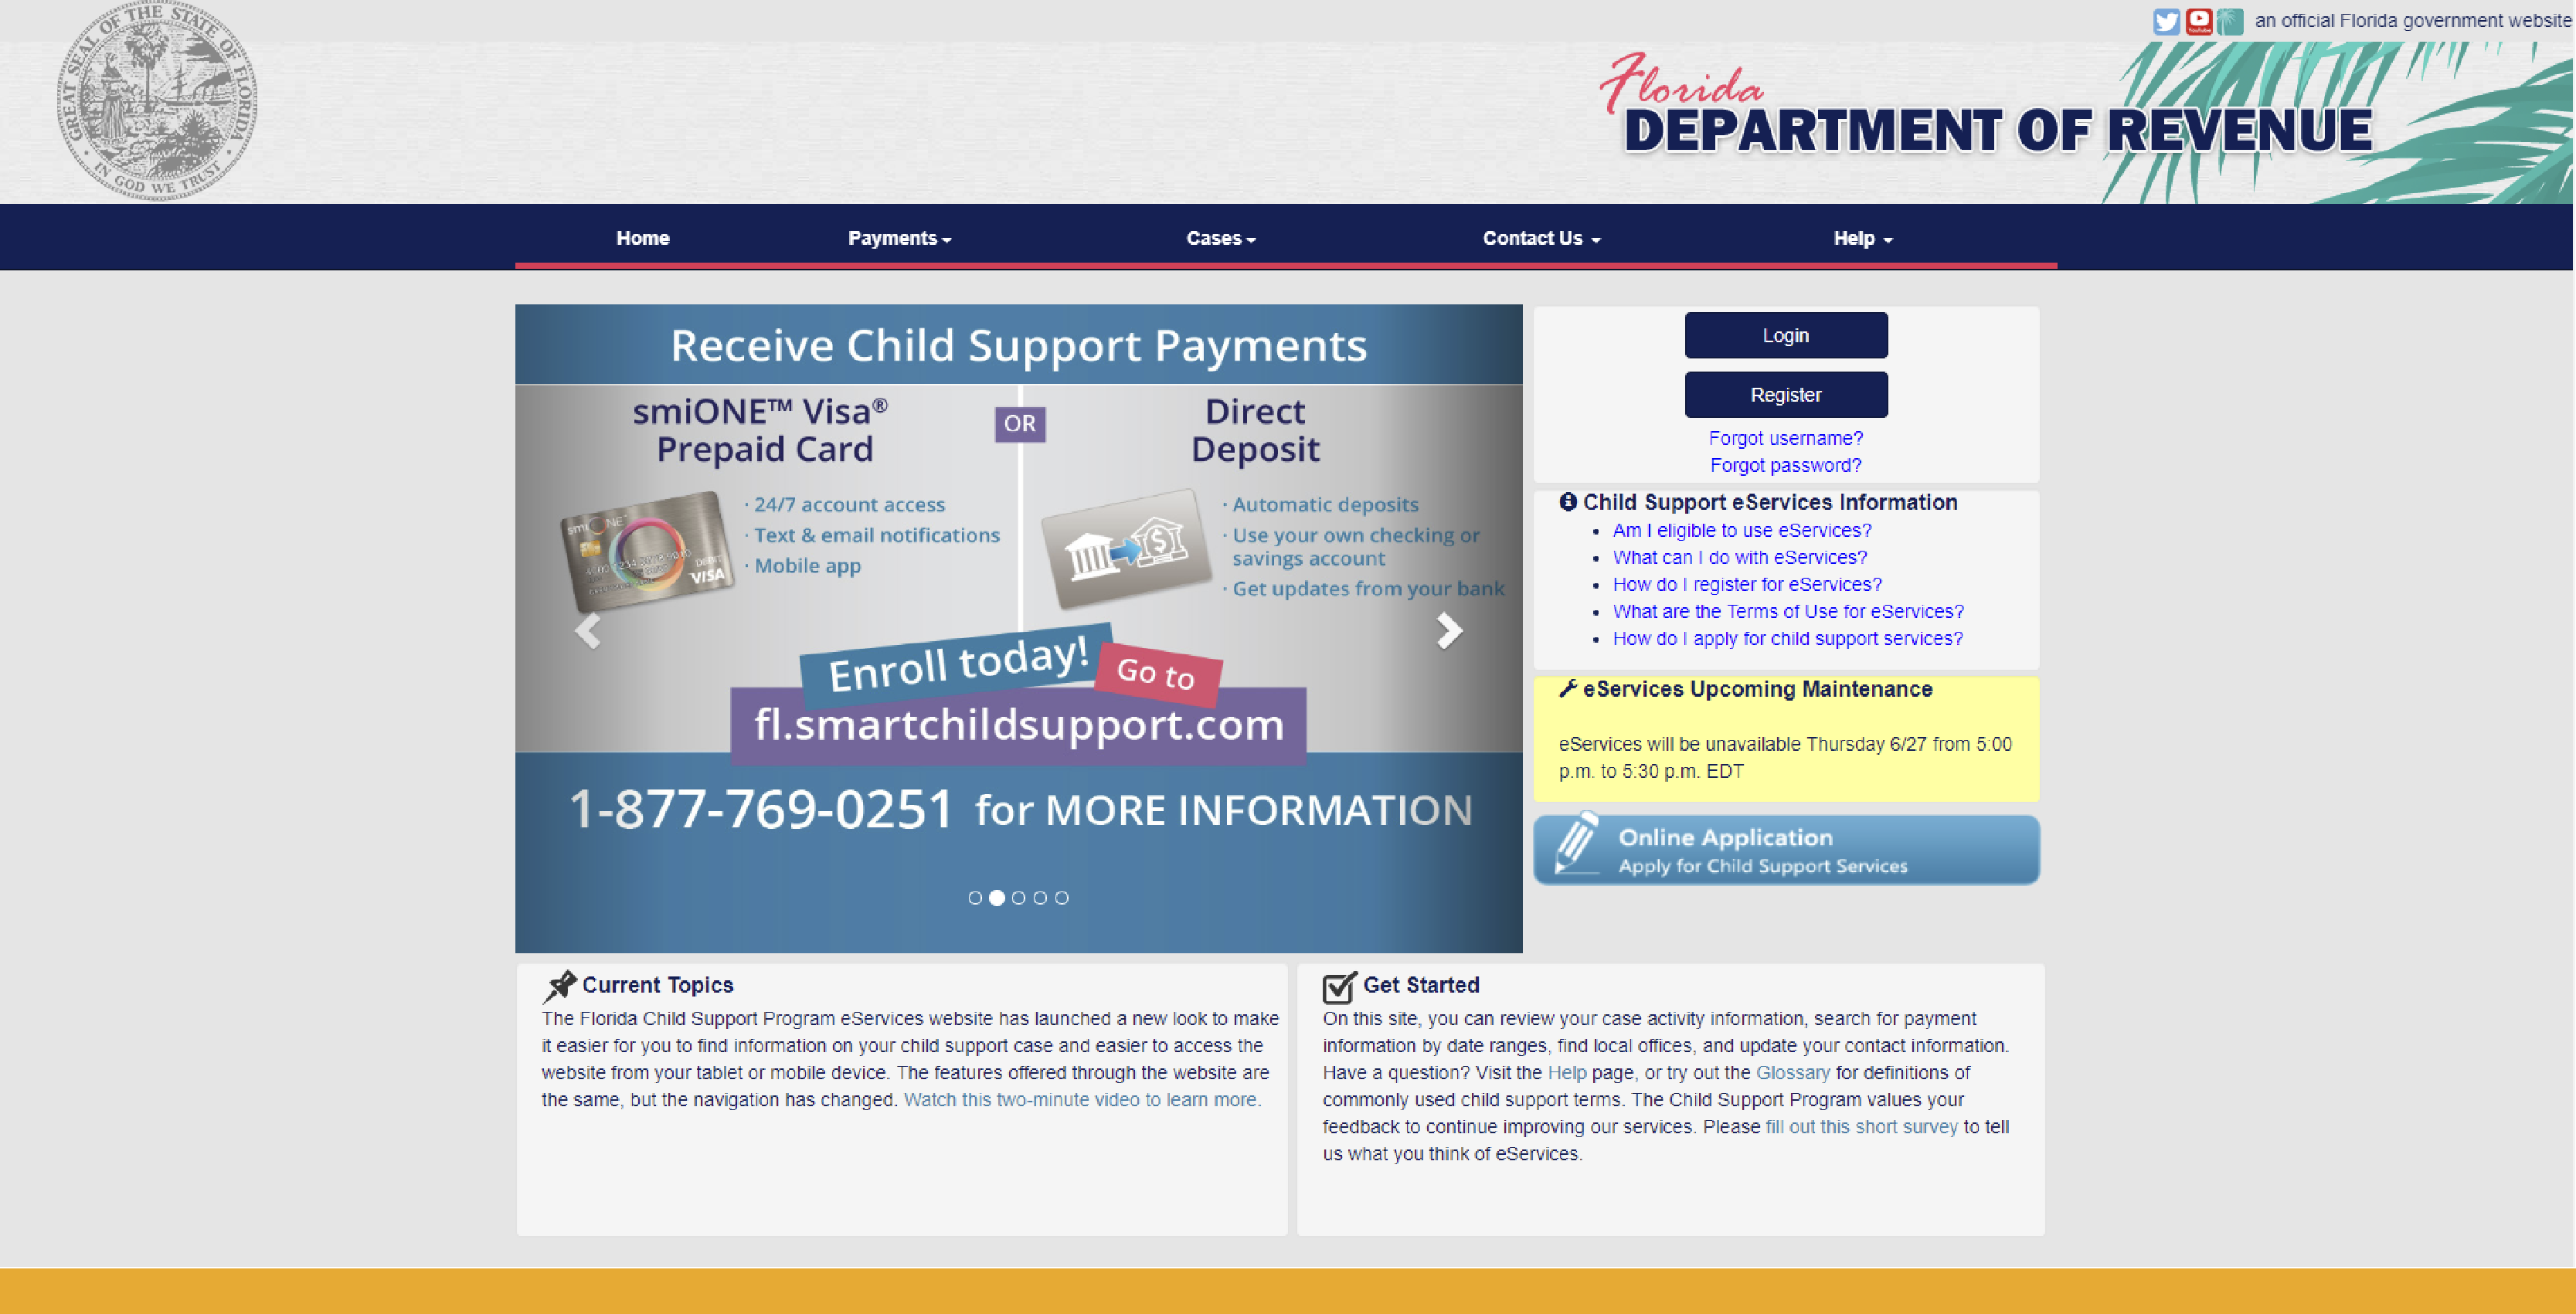 florida-department-of-revenue-webpage